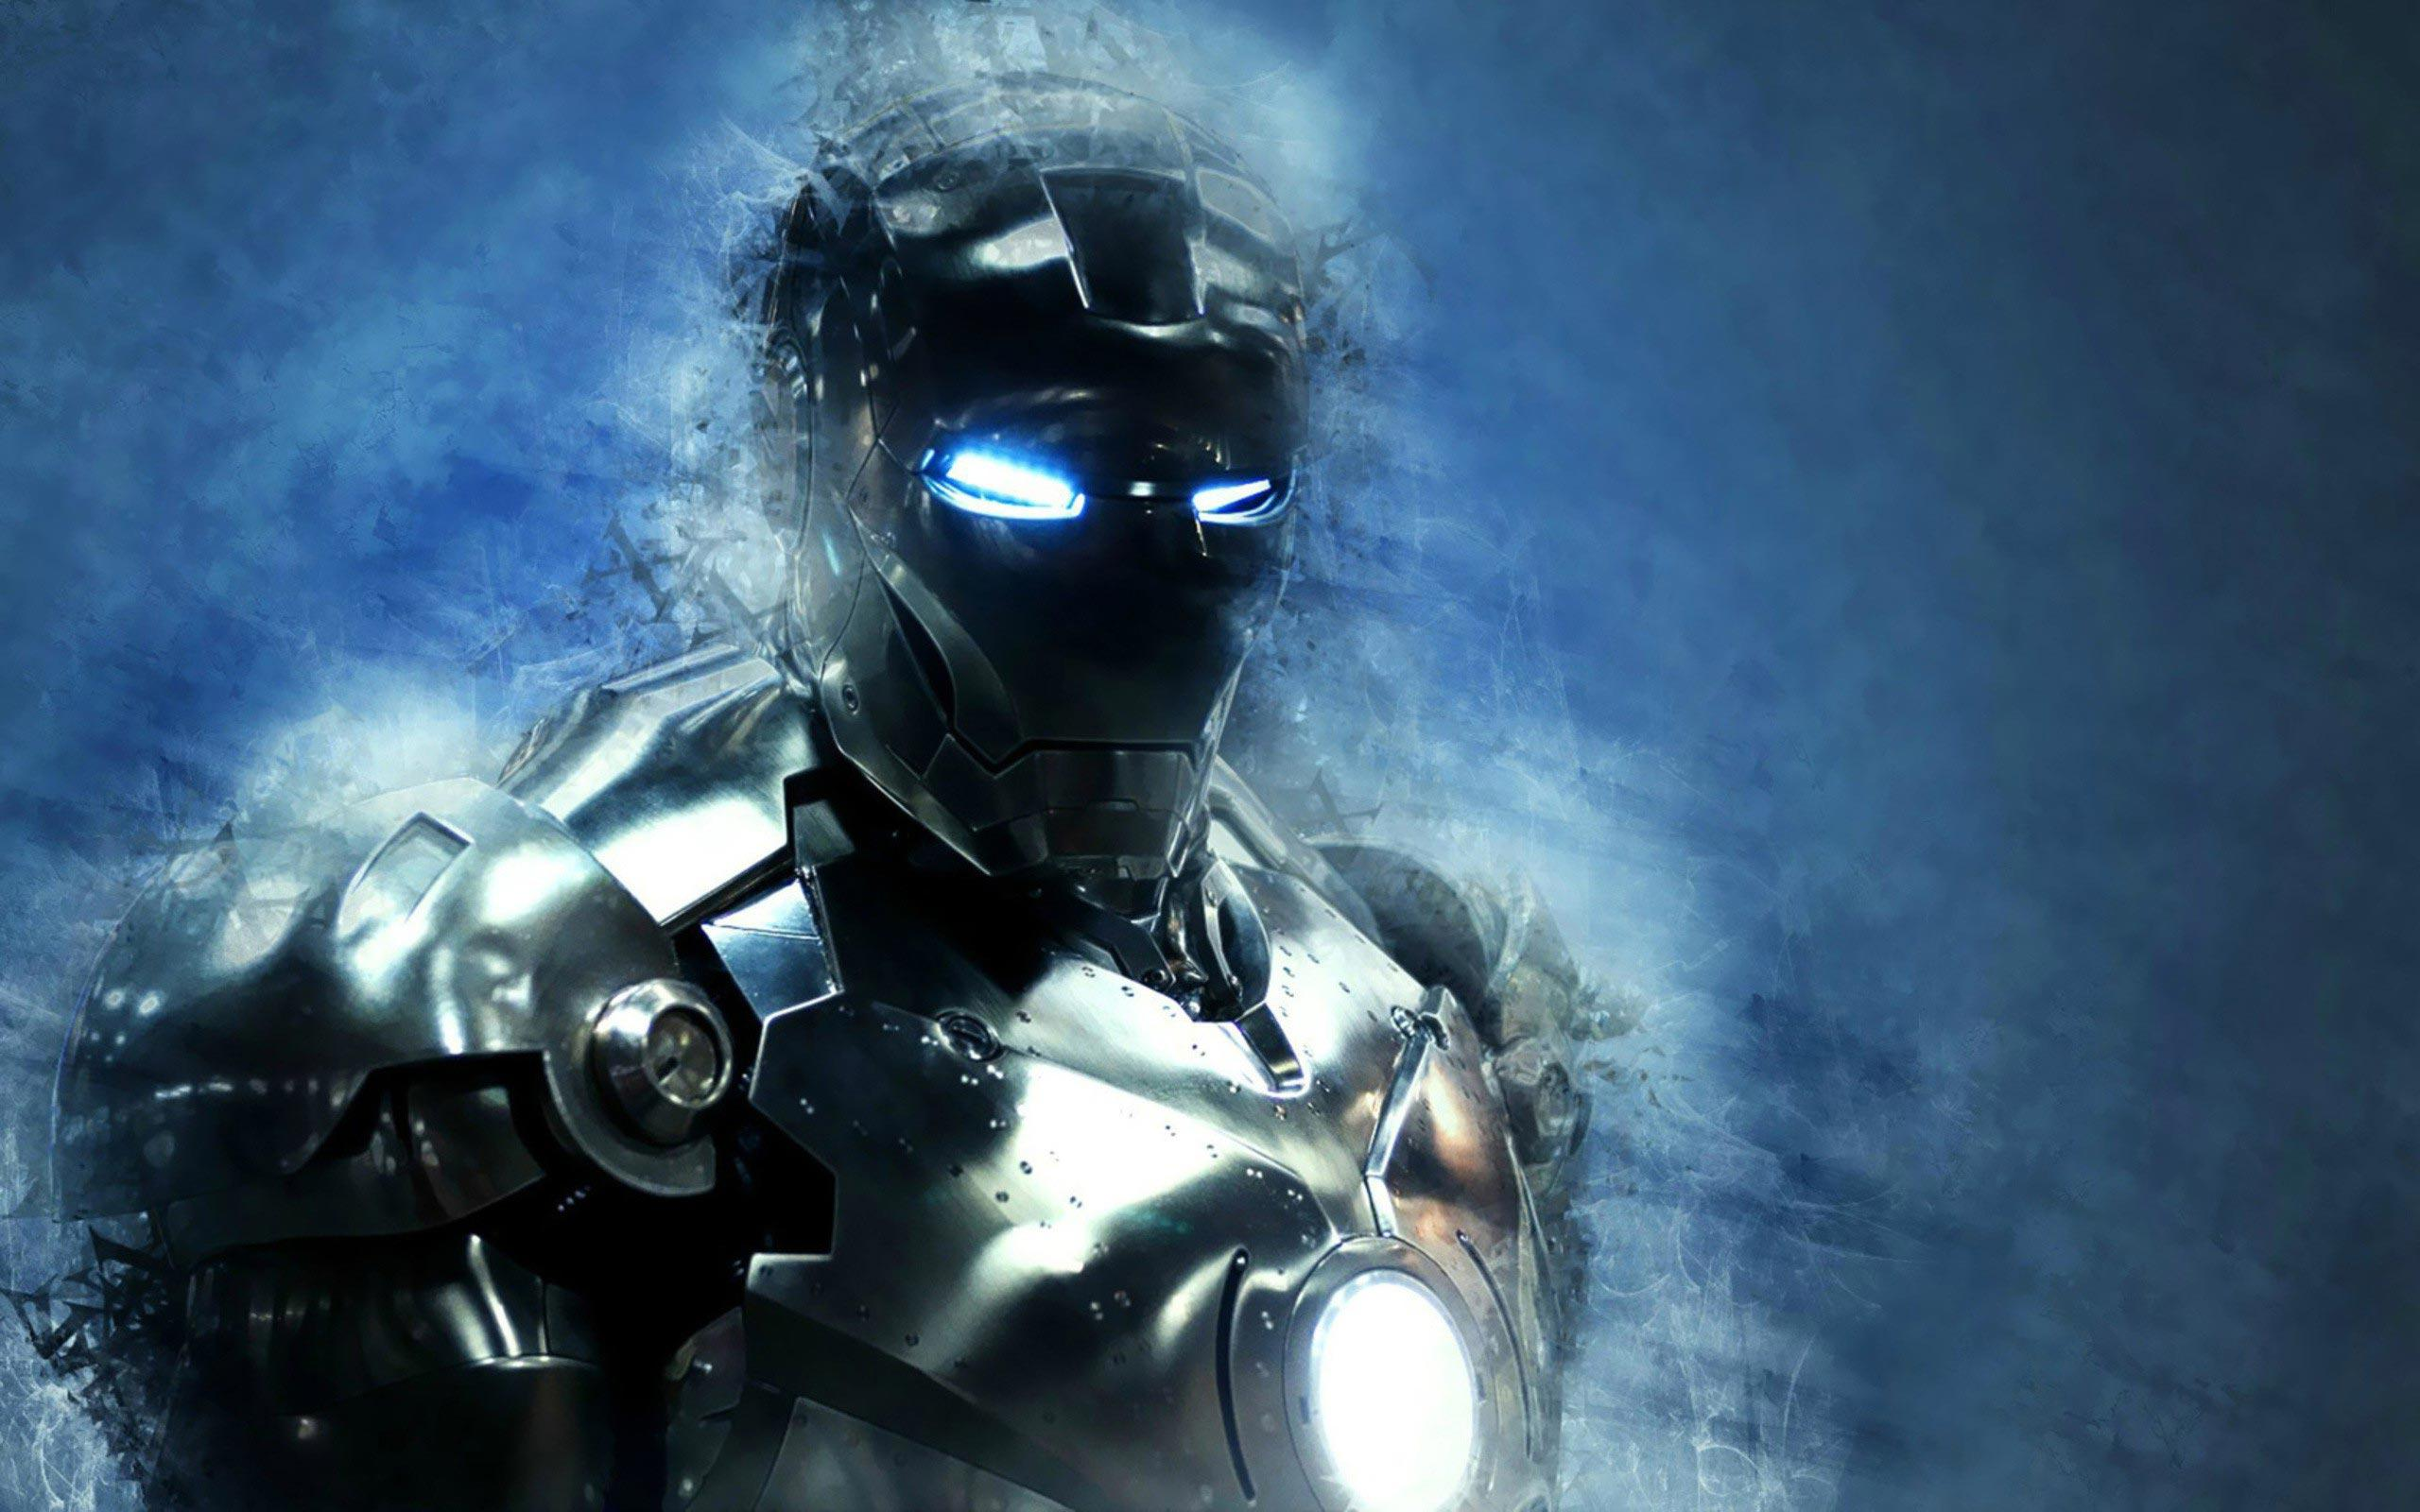 iron_man_super_hero_superheroes_marvel_hd-wallpaper-1696760